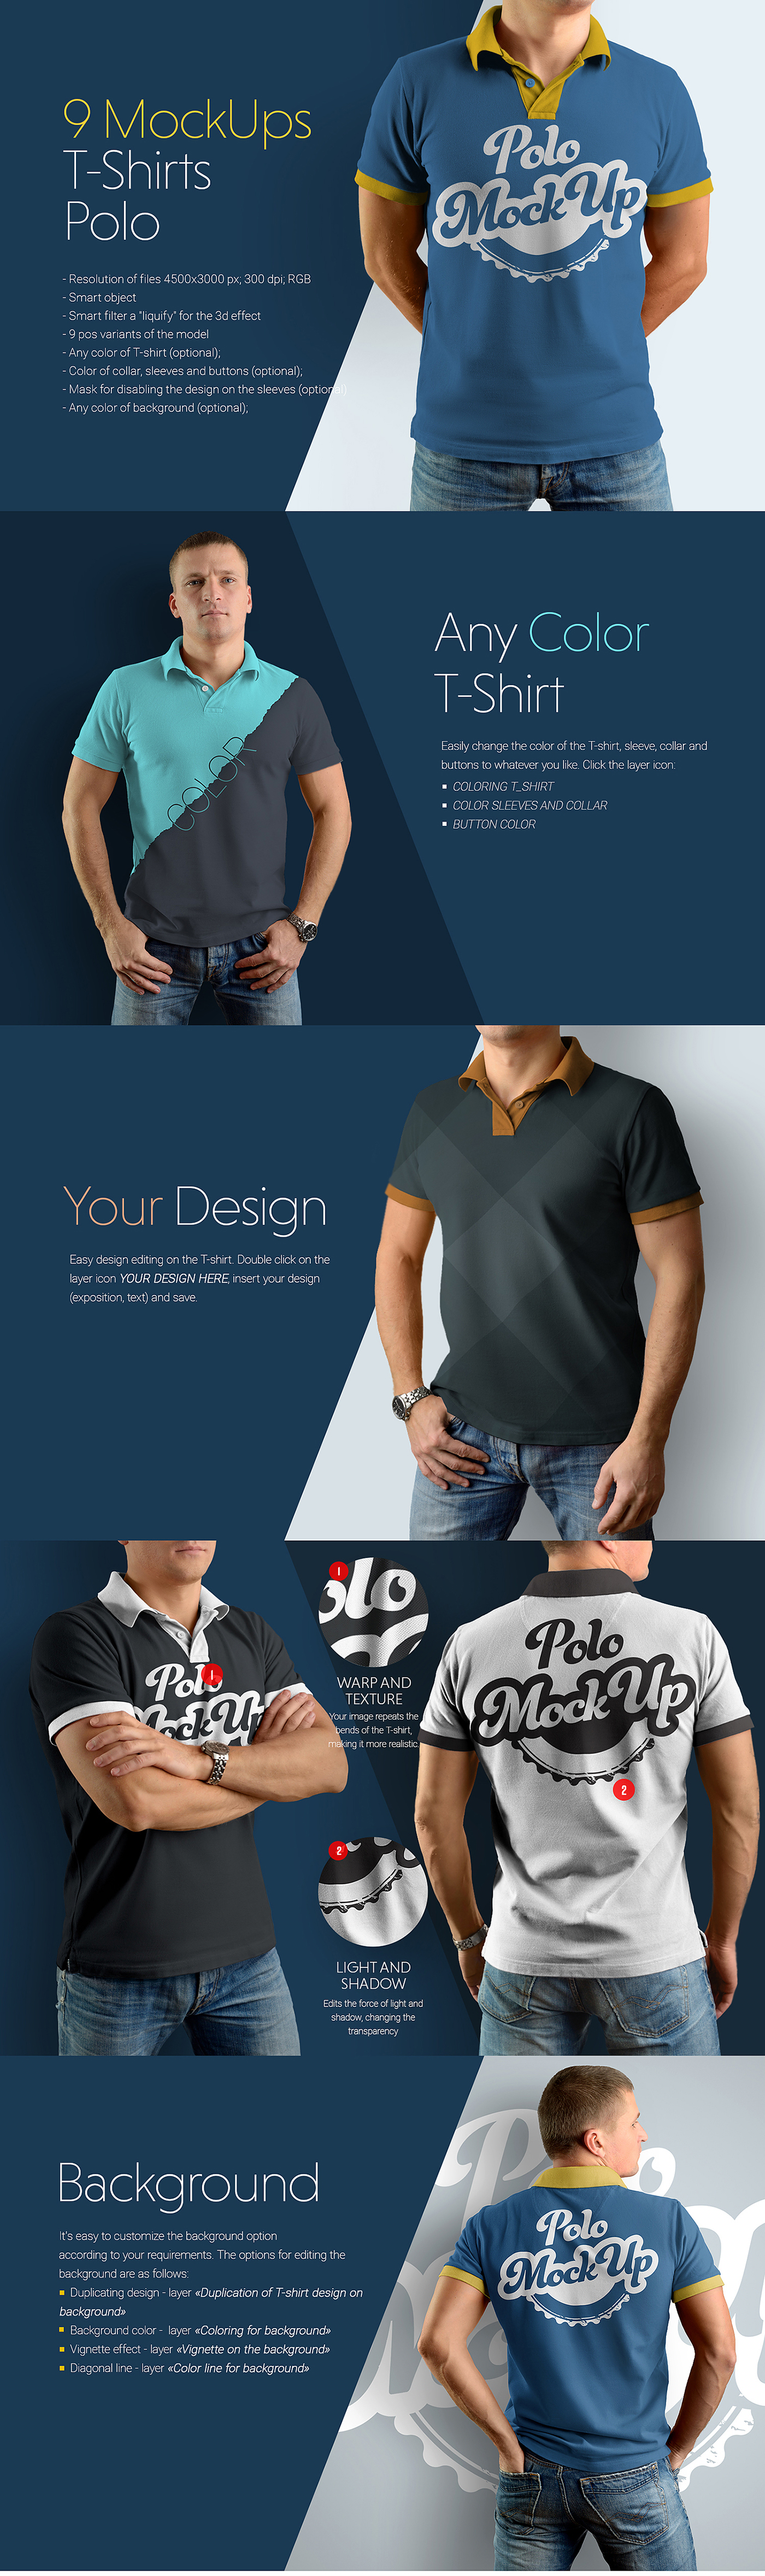 Design Your Own Polo Shirt Online Australia Summer Cook